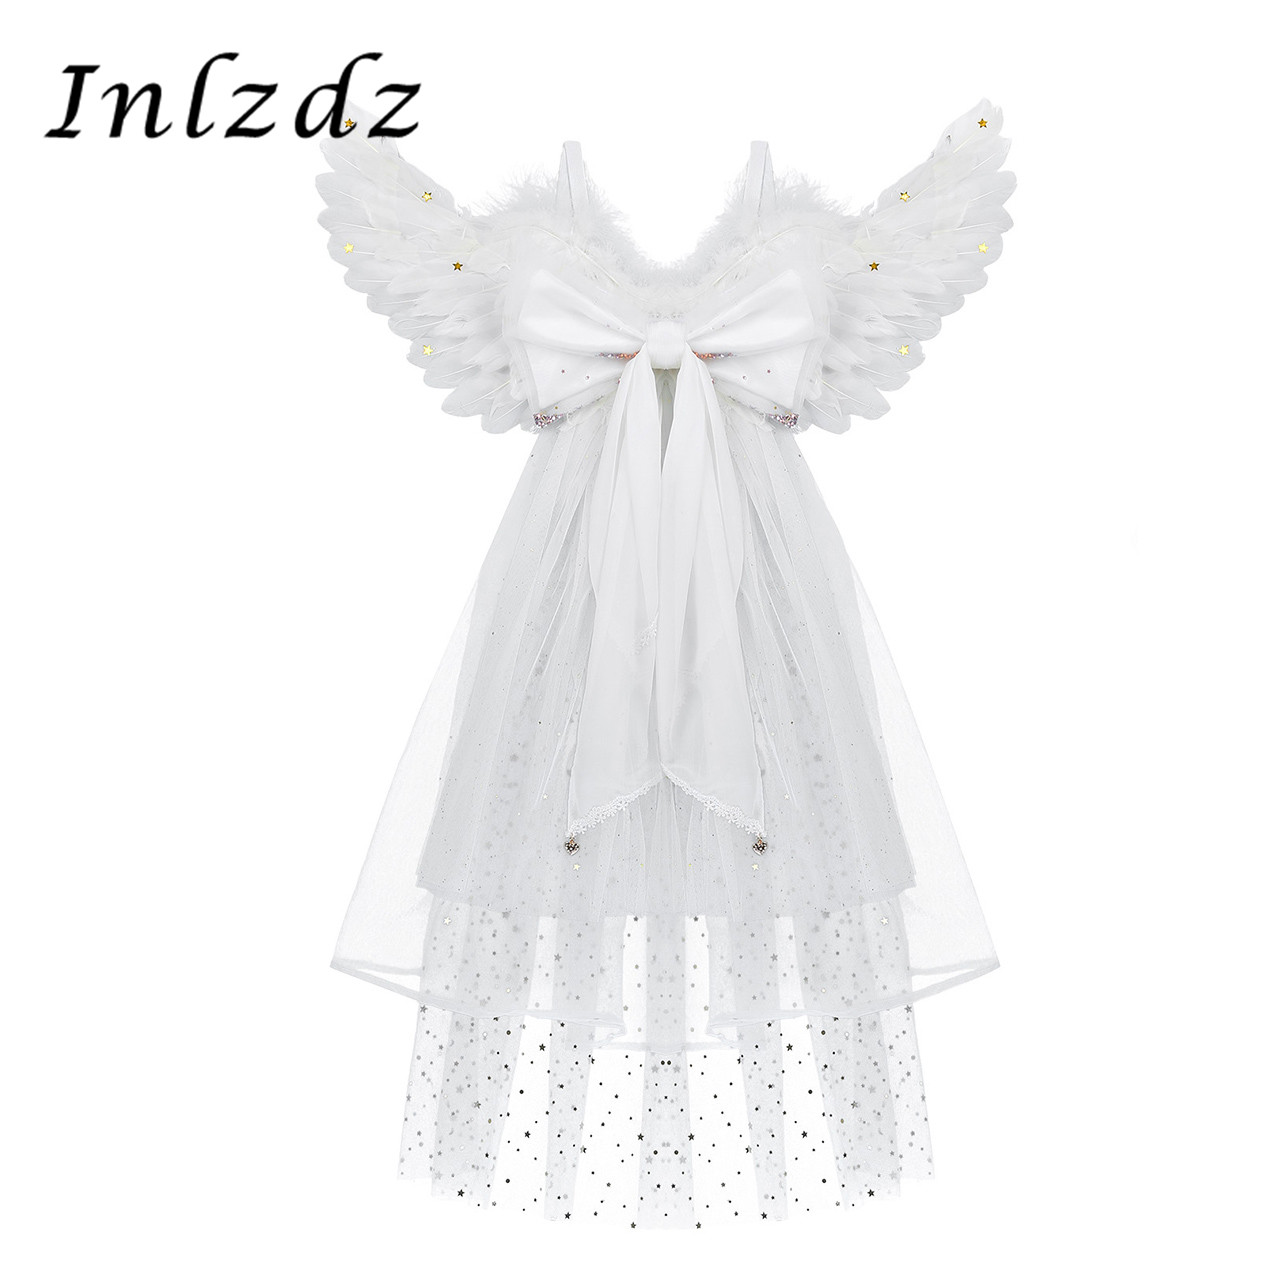 Kids Girsl Feather Angel Wings With Three Layered Tulle For Dance Party Cosplay Costume Masquerade Carnival Holiday Fancy Dress